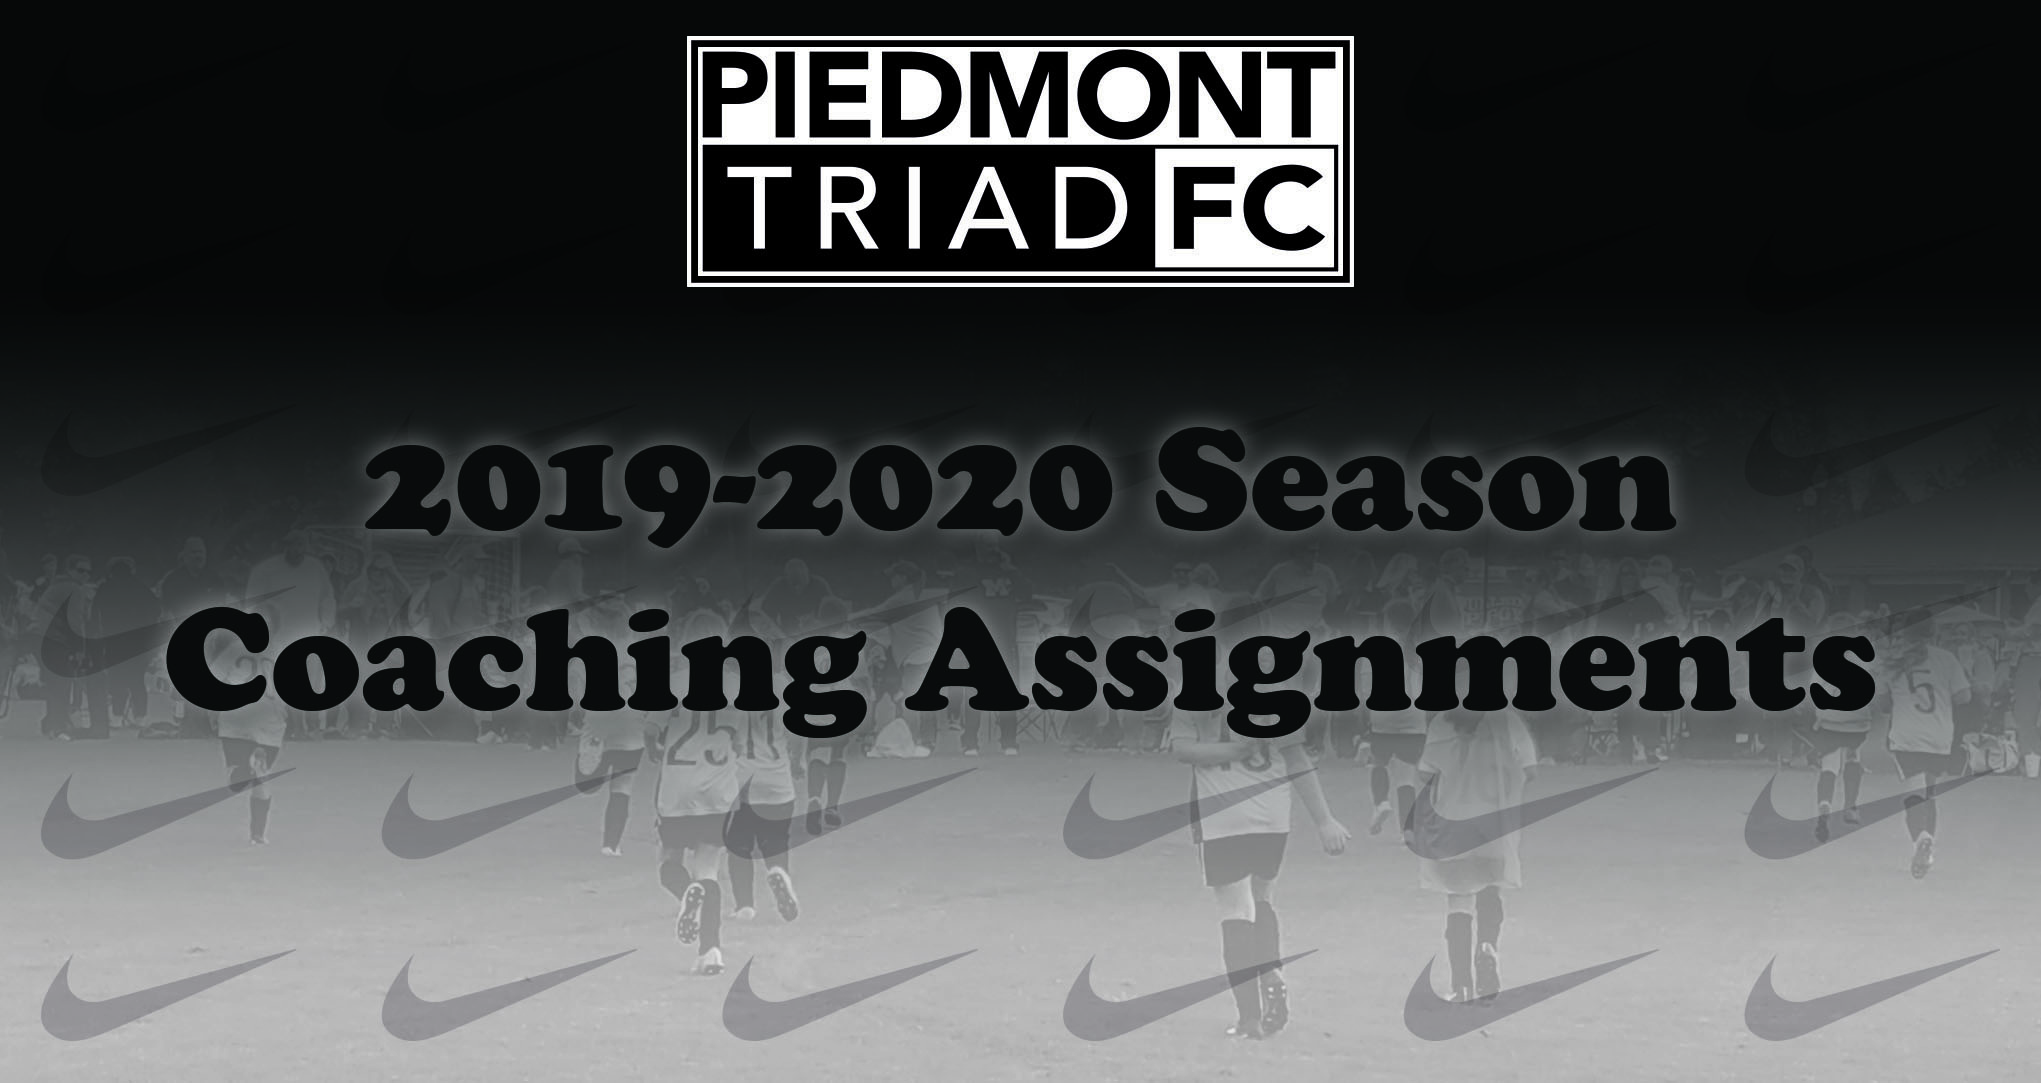 2019/20 PTFC Coaching Assignments